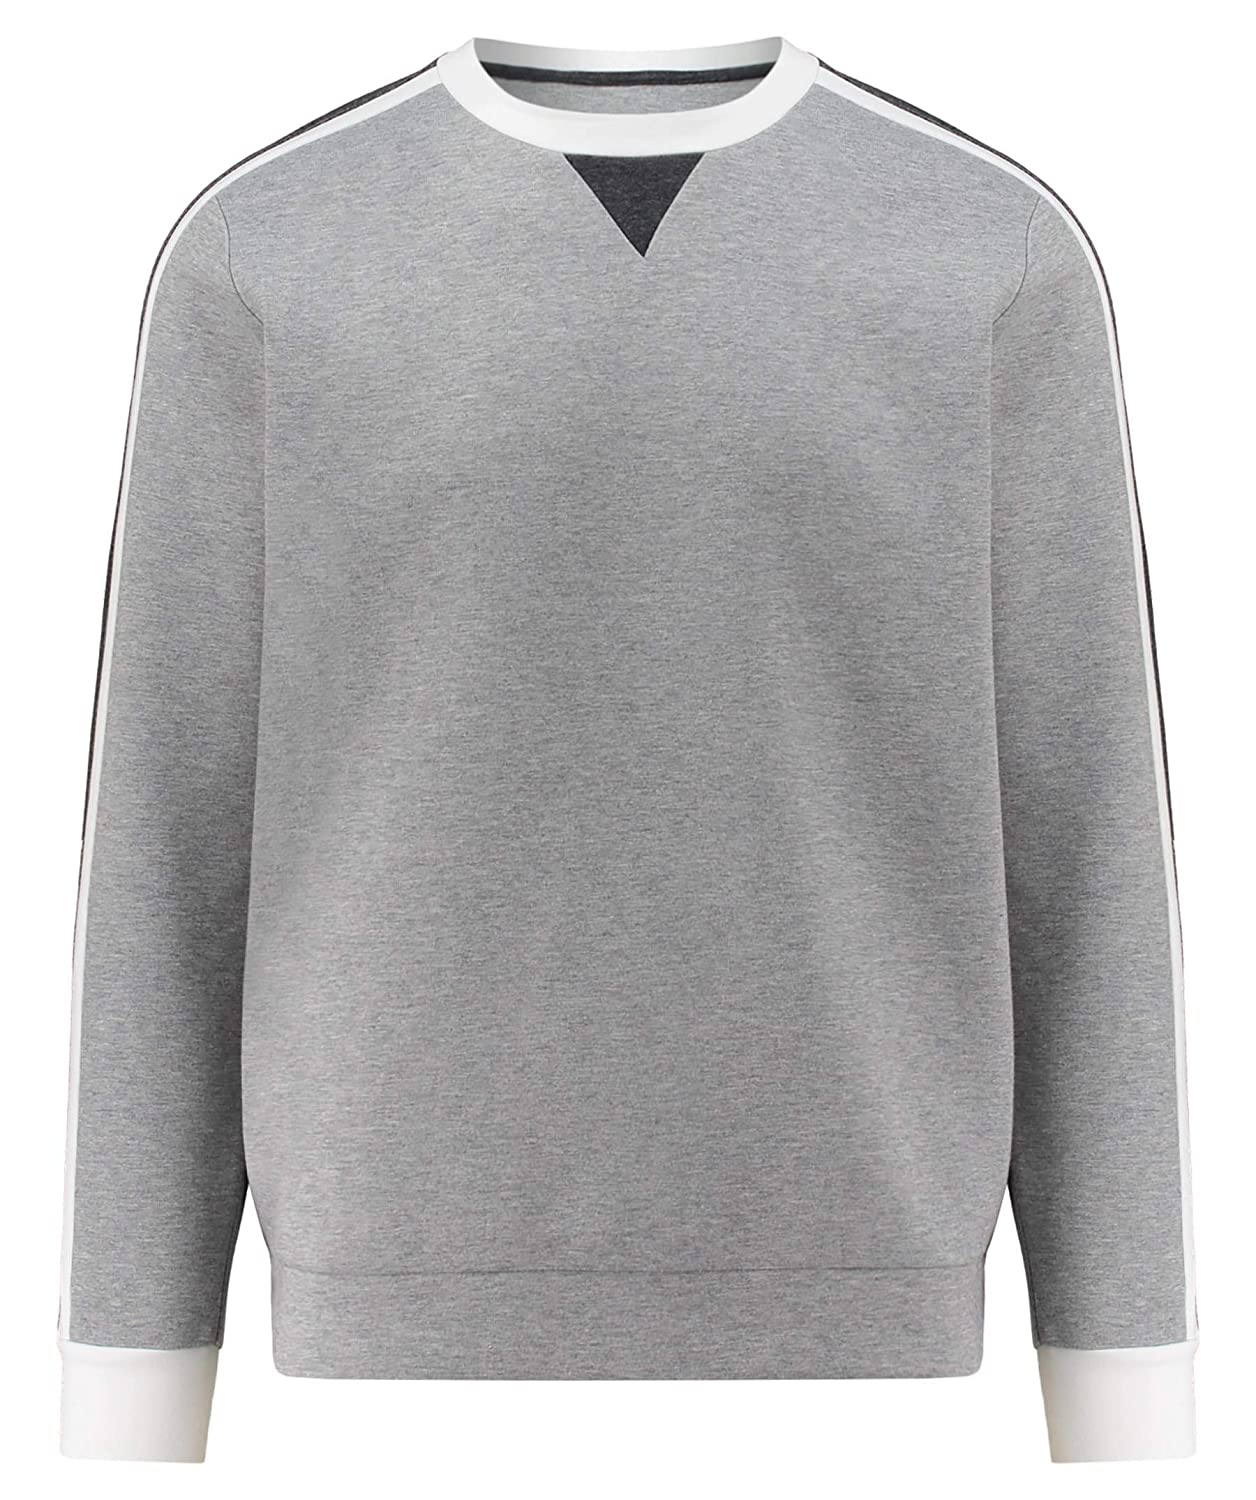 Marc O& 039;Polo Herren Sweatshirt Regular Fit